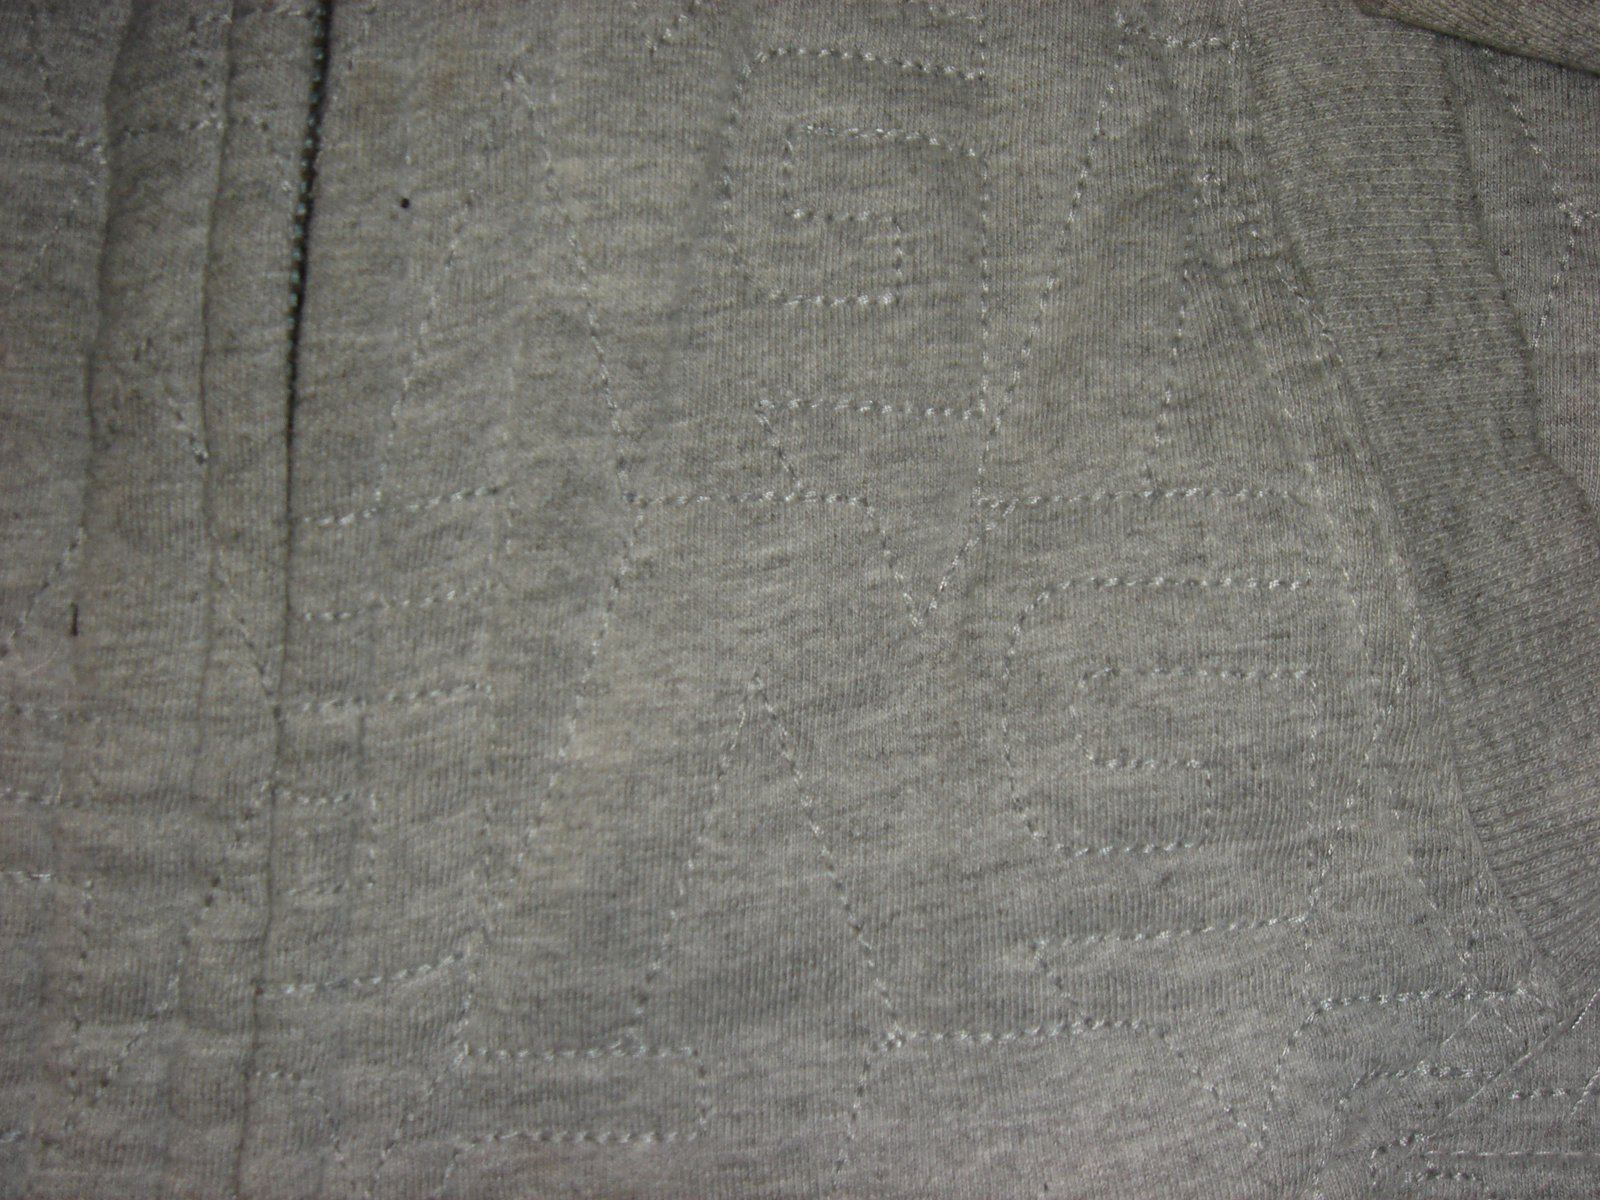 Stiching/detail of analog hoodie